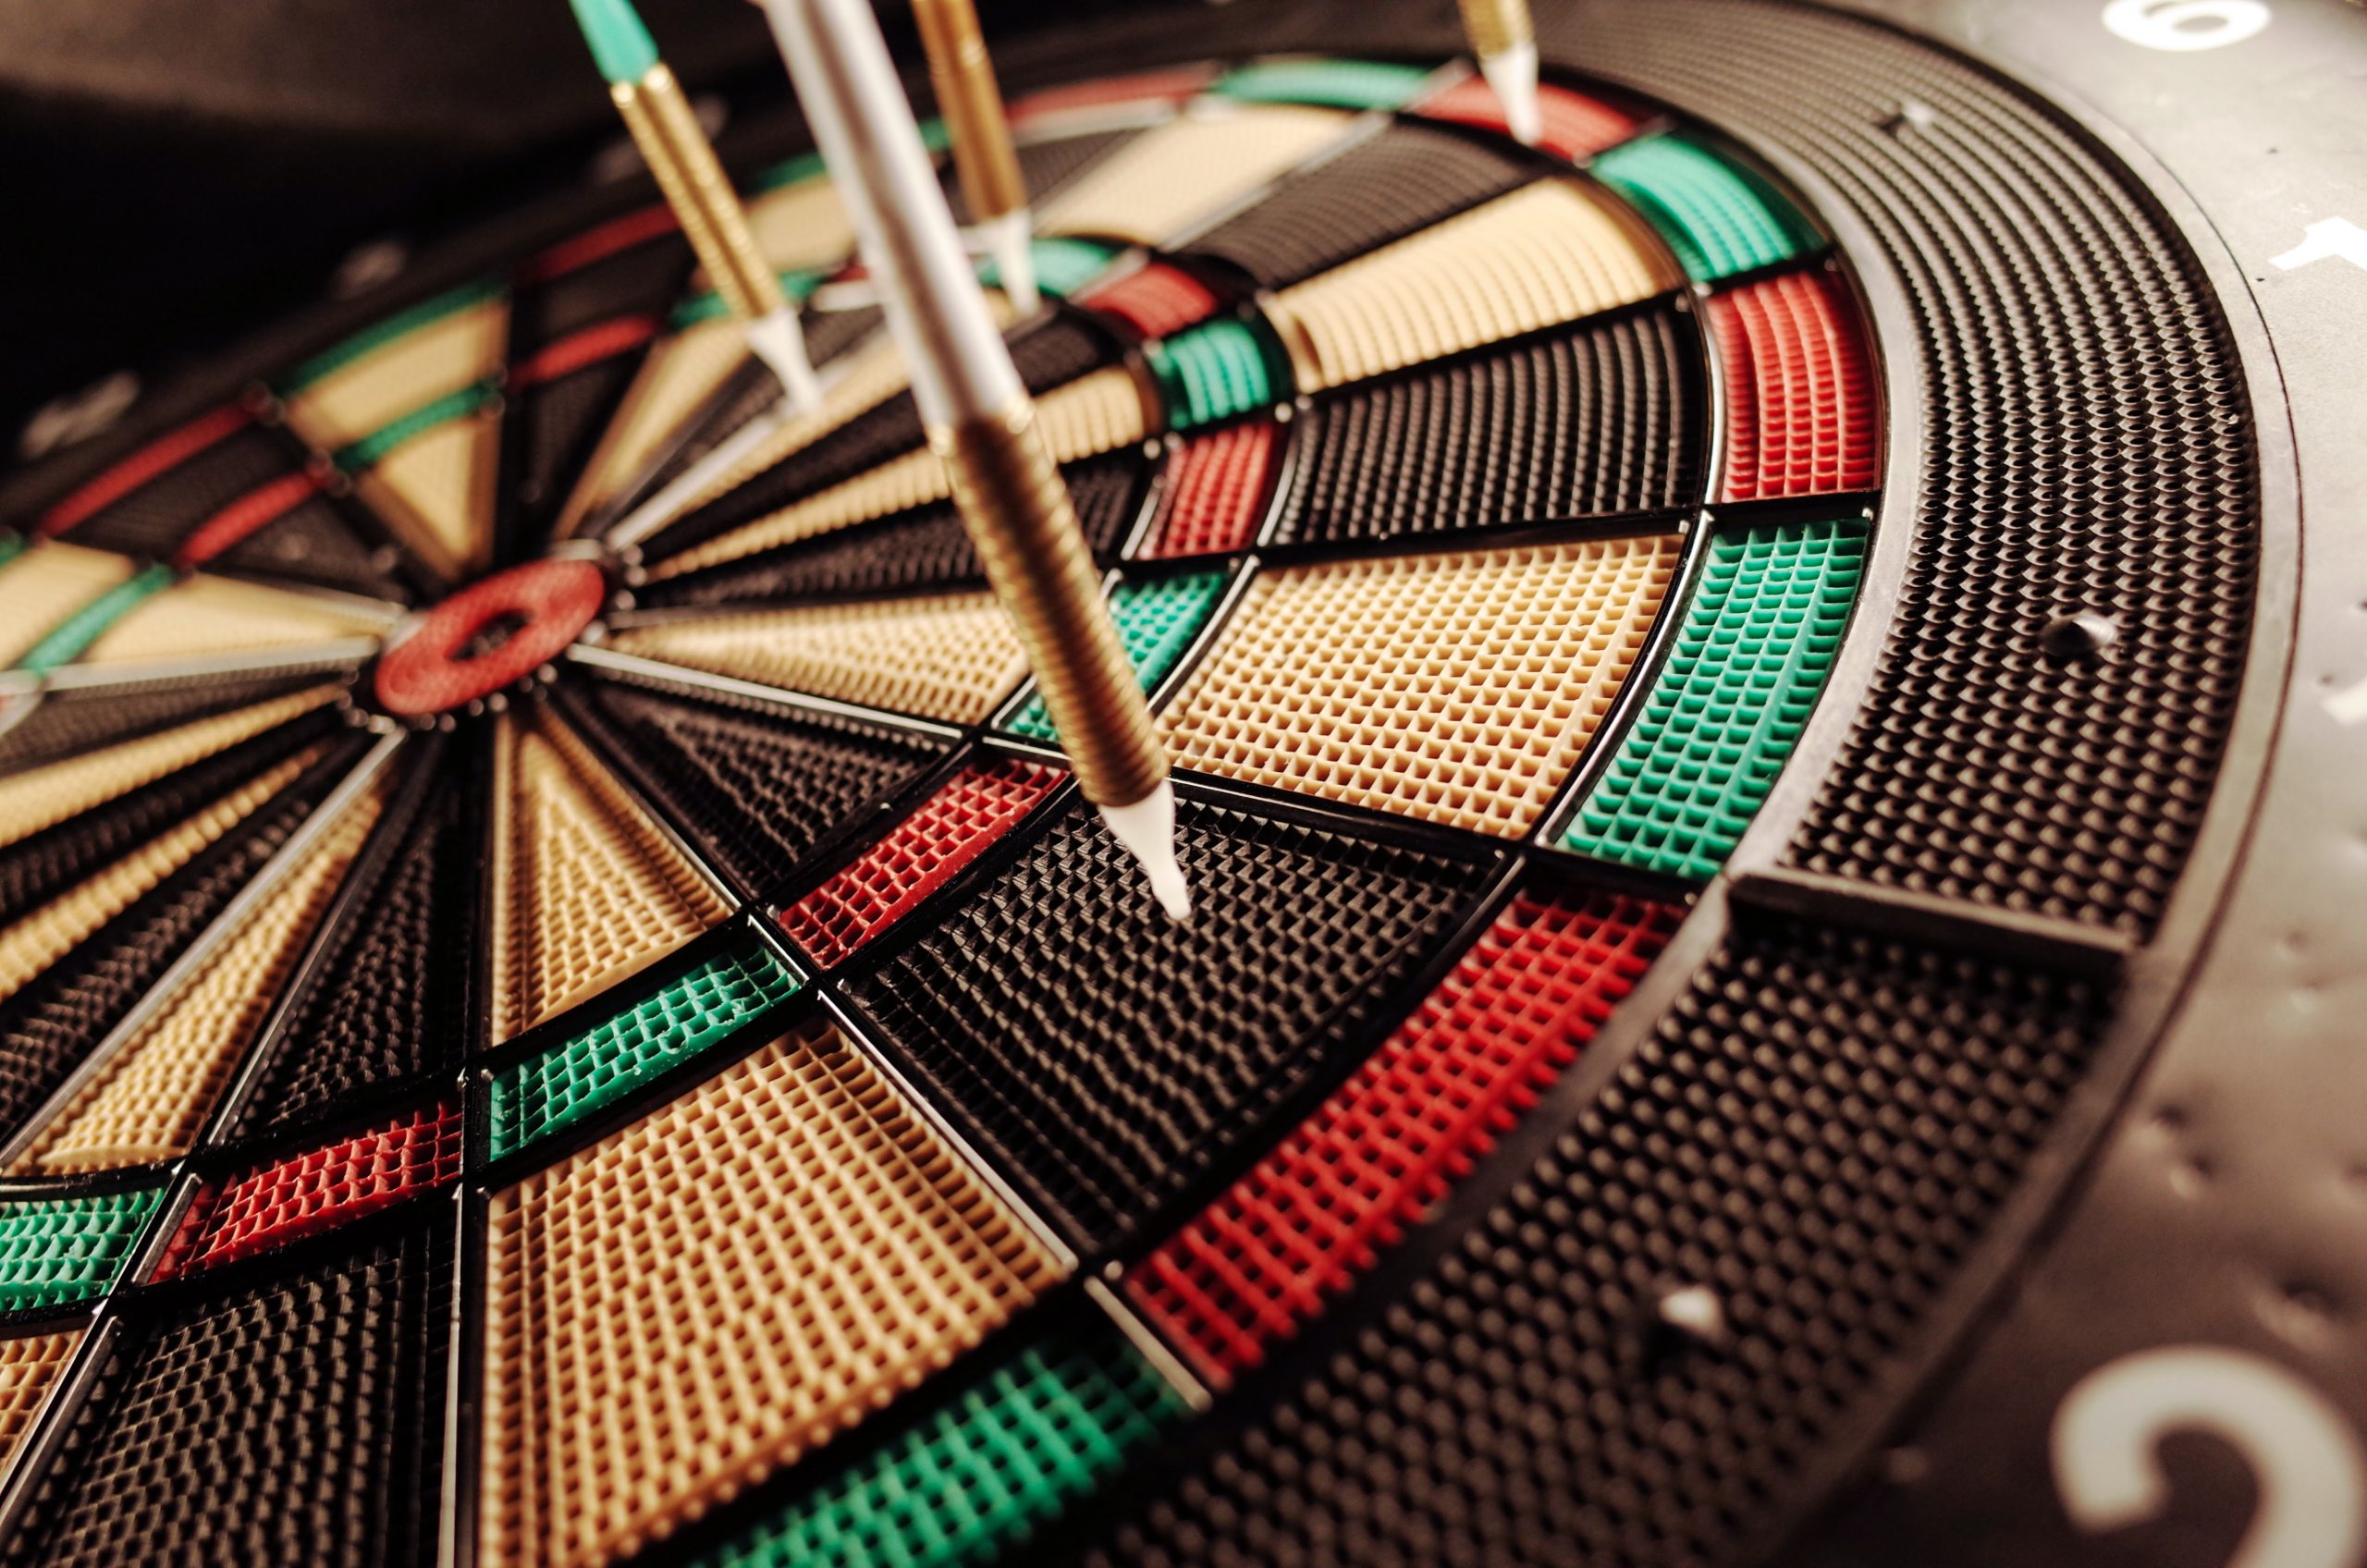 close-up of darts on a rubber target board